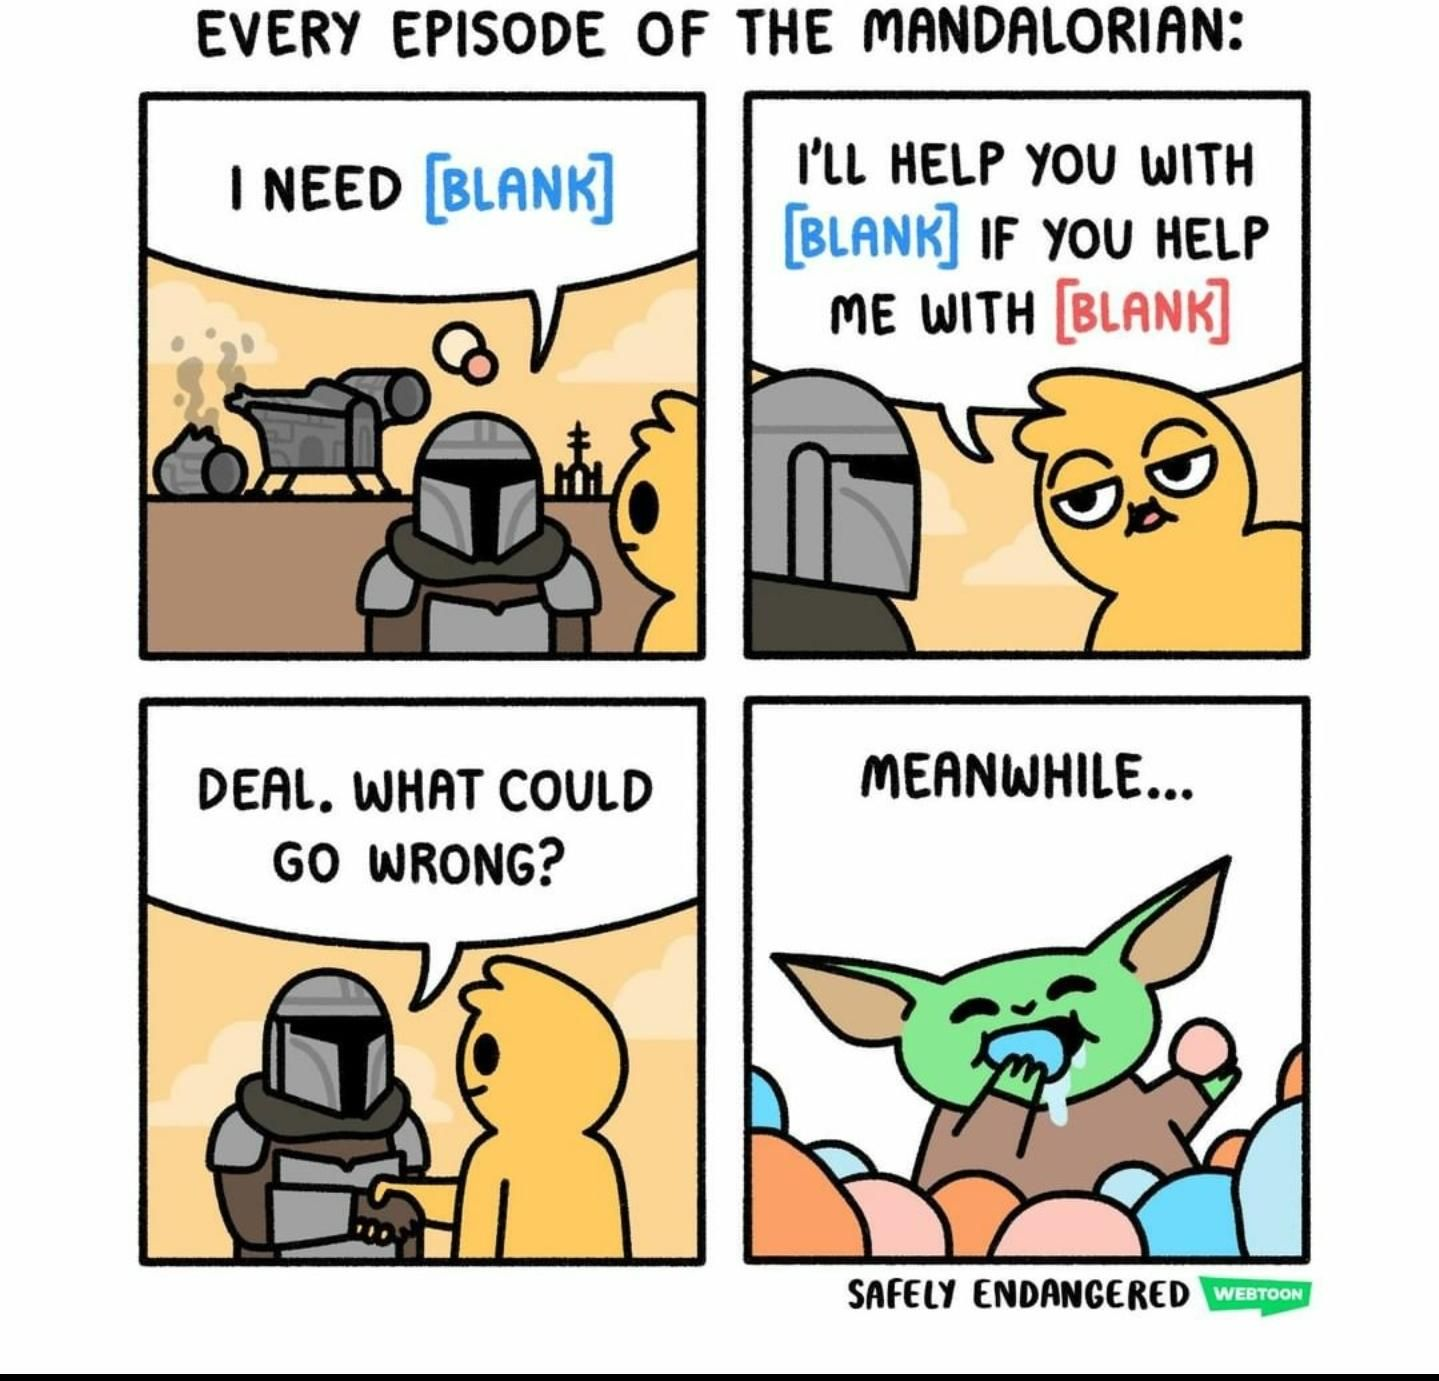 This Is Wholesome R Wholesomememes Wholesome Memes Star Wars Humor Star Wars Fandom Star Wars Memes